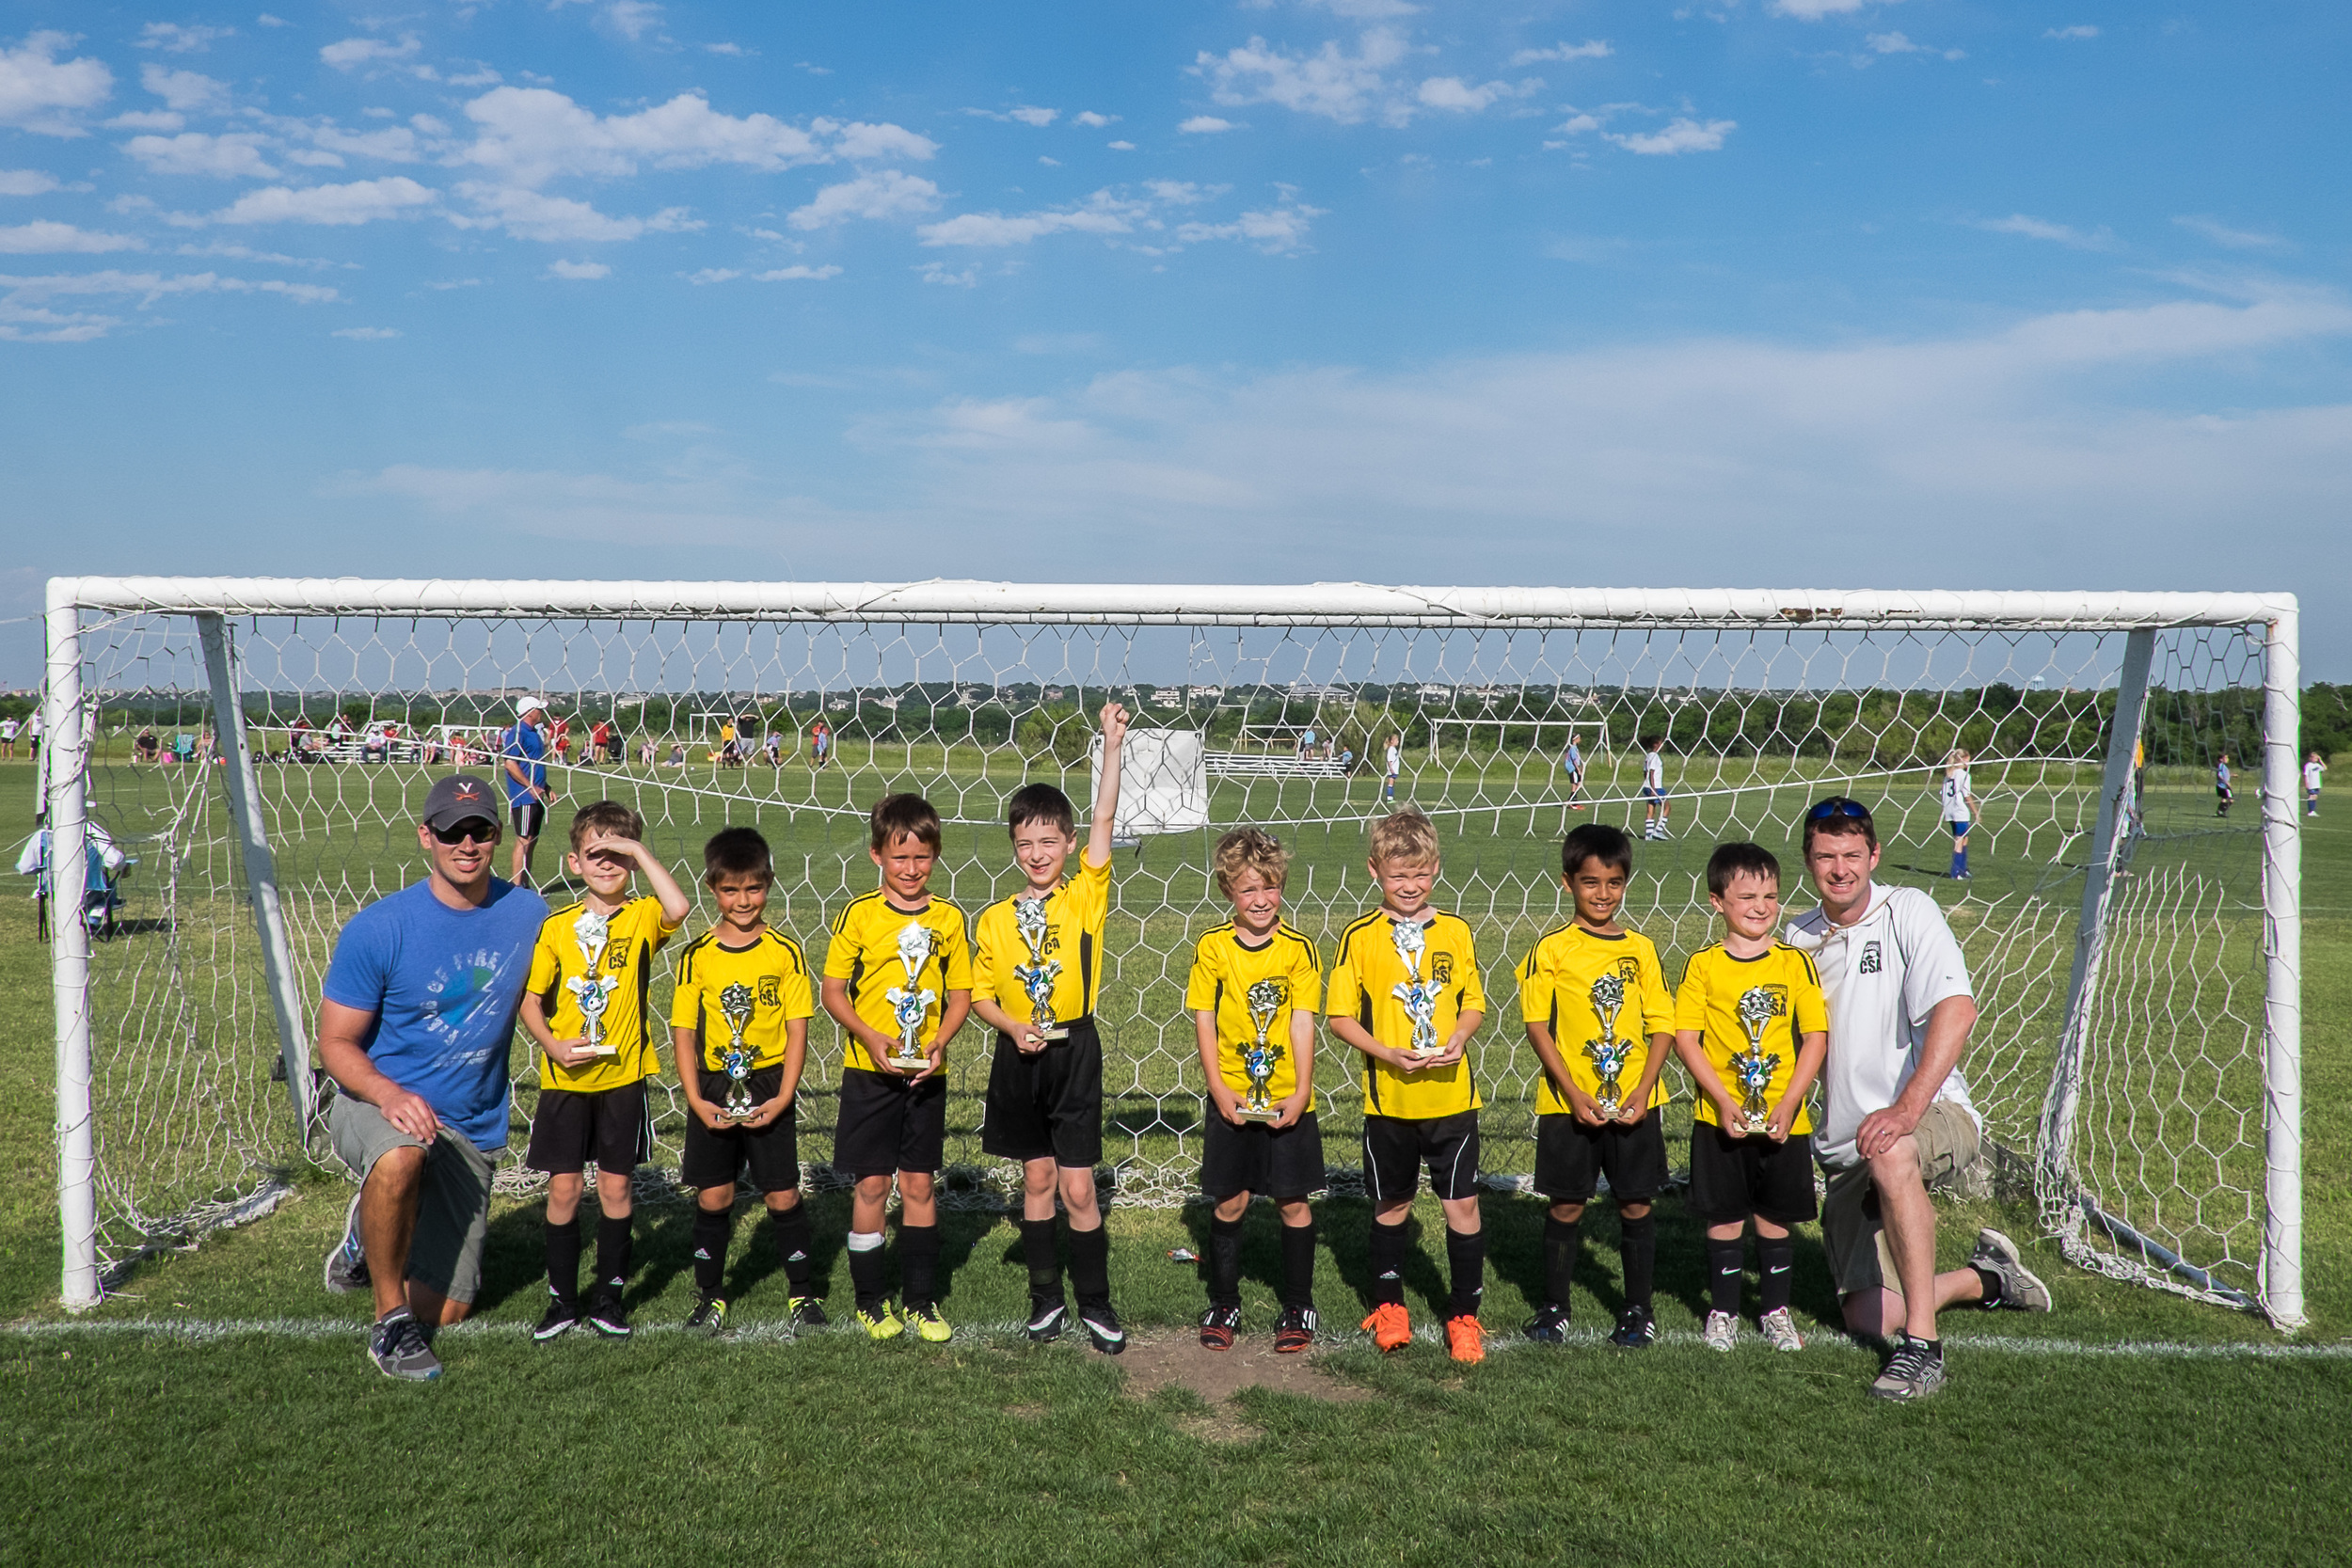 The Mighty Minions finished their season strong and competed in a tournament packed with academy teams. They didn't win, but they kept all of those teams running hard. We're very proud of this group of boys!